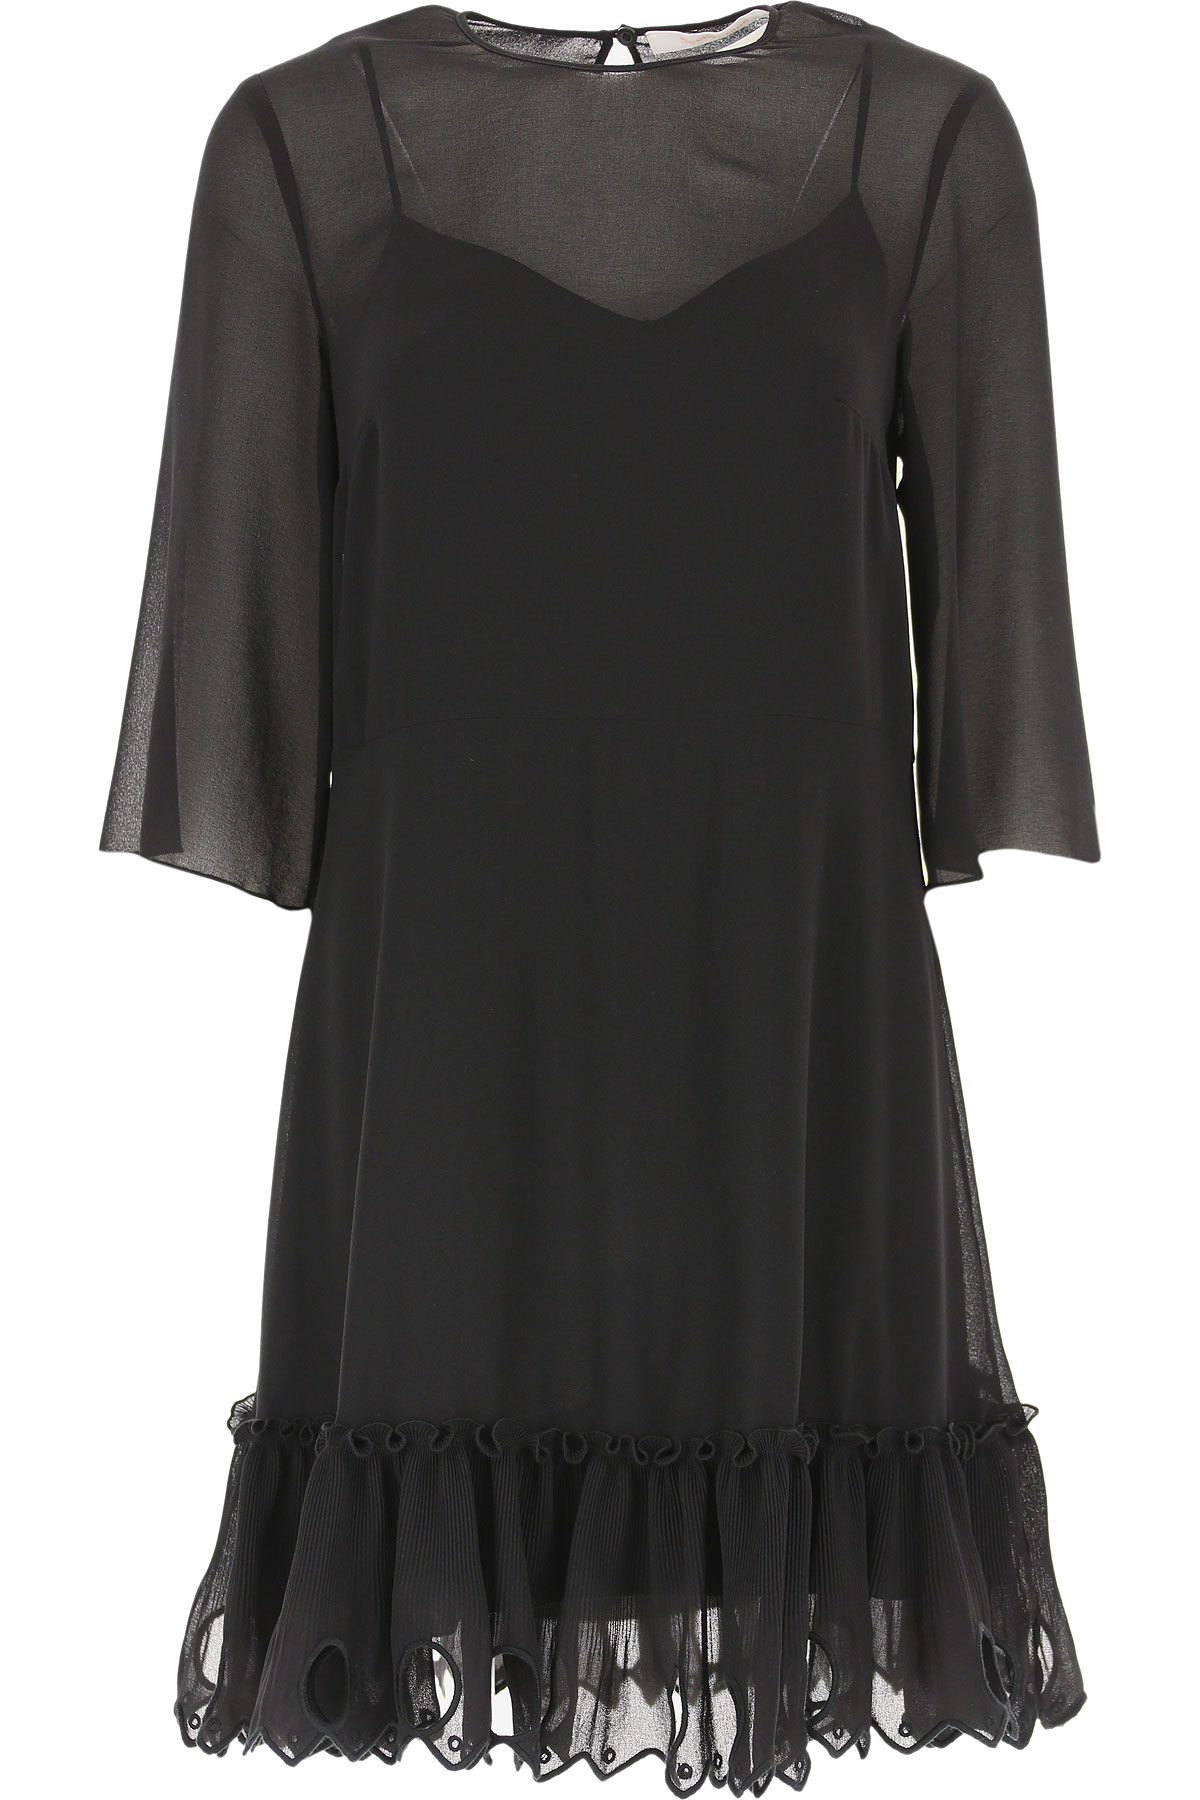 See By Chloe Dress for Women, Evening Cocktail Party On Sale, Black, polyestere, 2019, 4 6 8